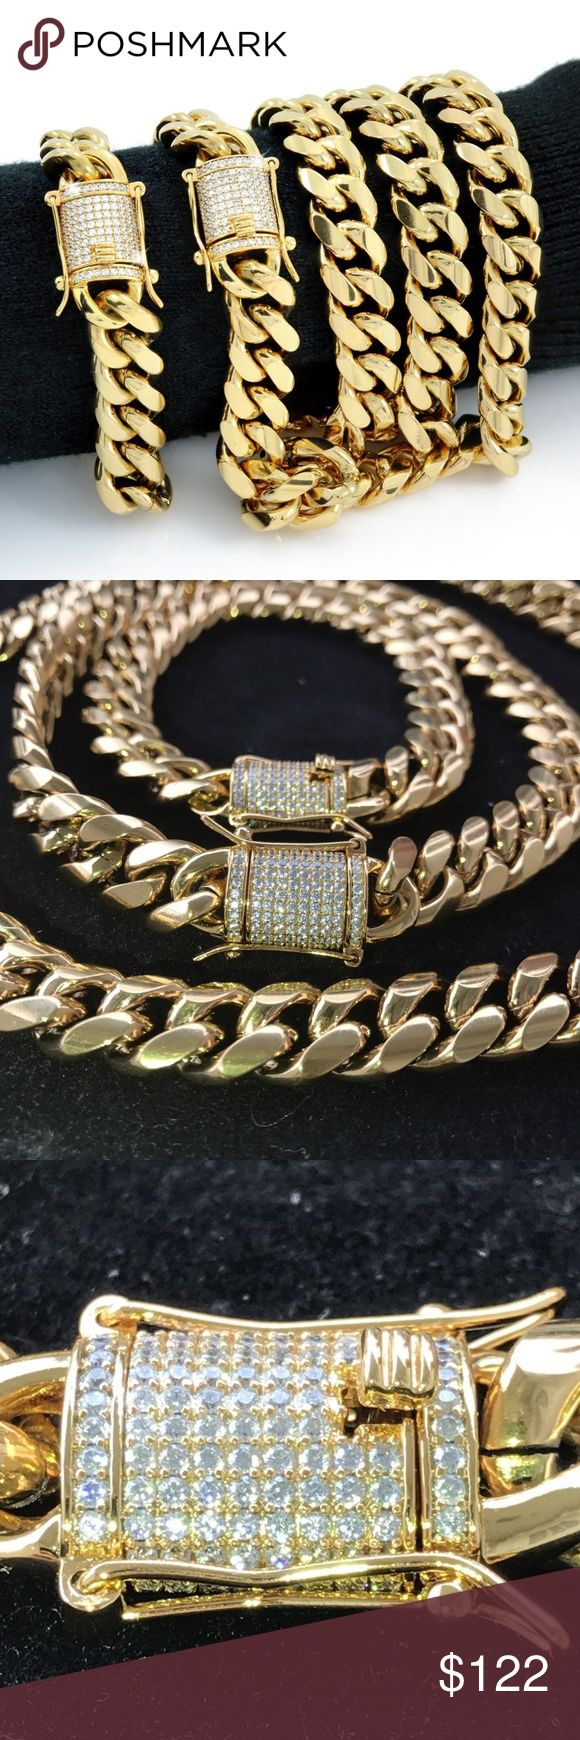 "Mens Cuban Miami Link Bracelet & Chain Set Men's 30"" Miami Cuban chain & 8.5"" bracelet matching set  18k gold over stainless steel  10mm thick  